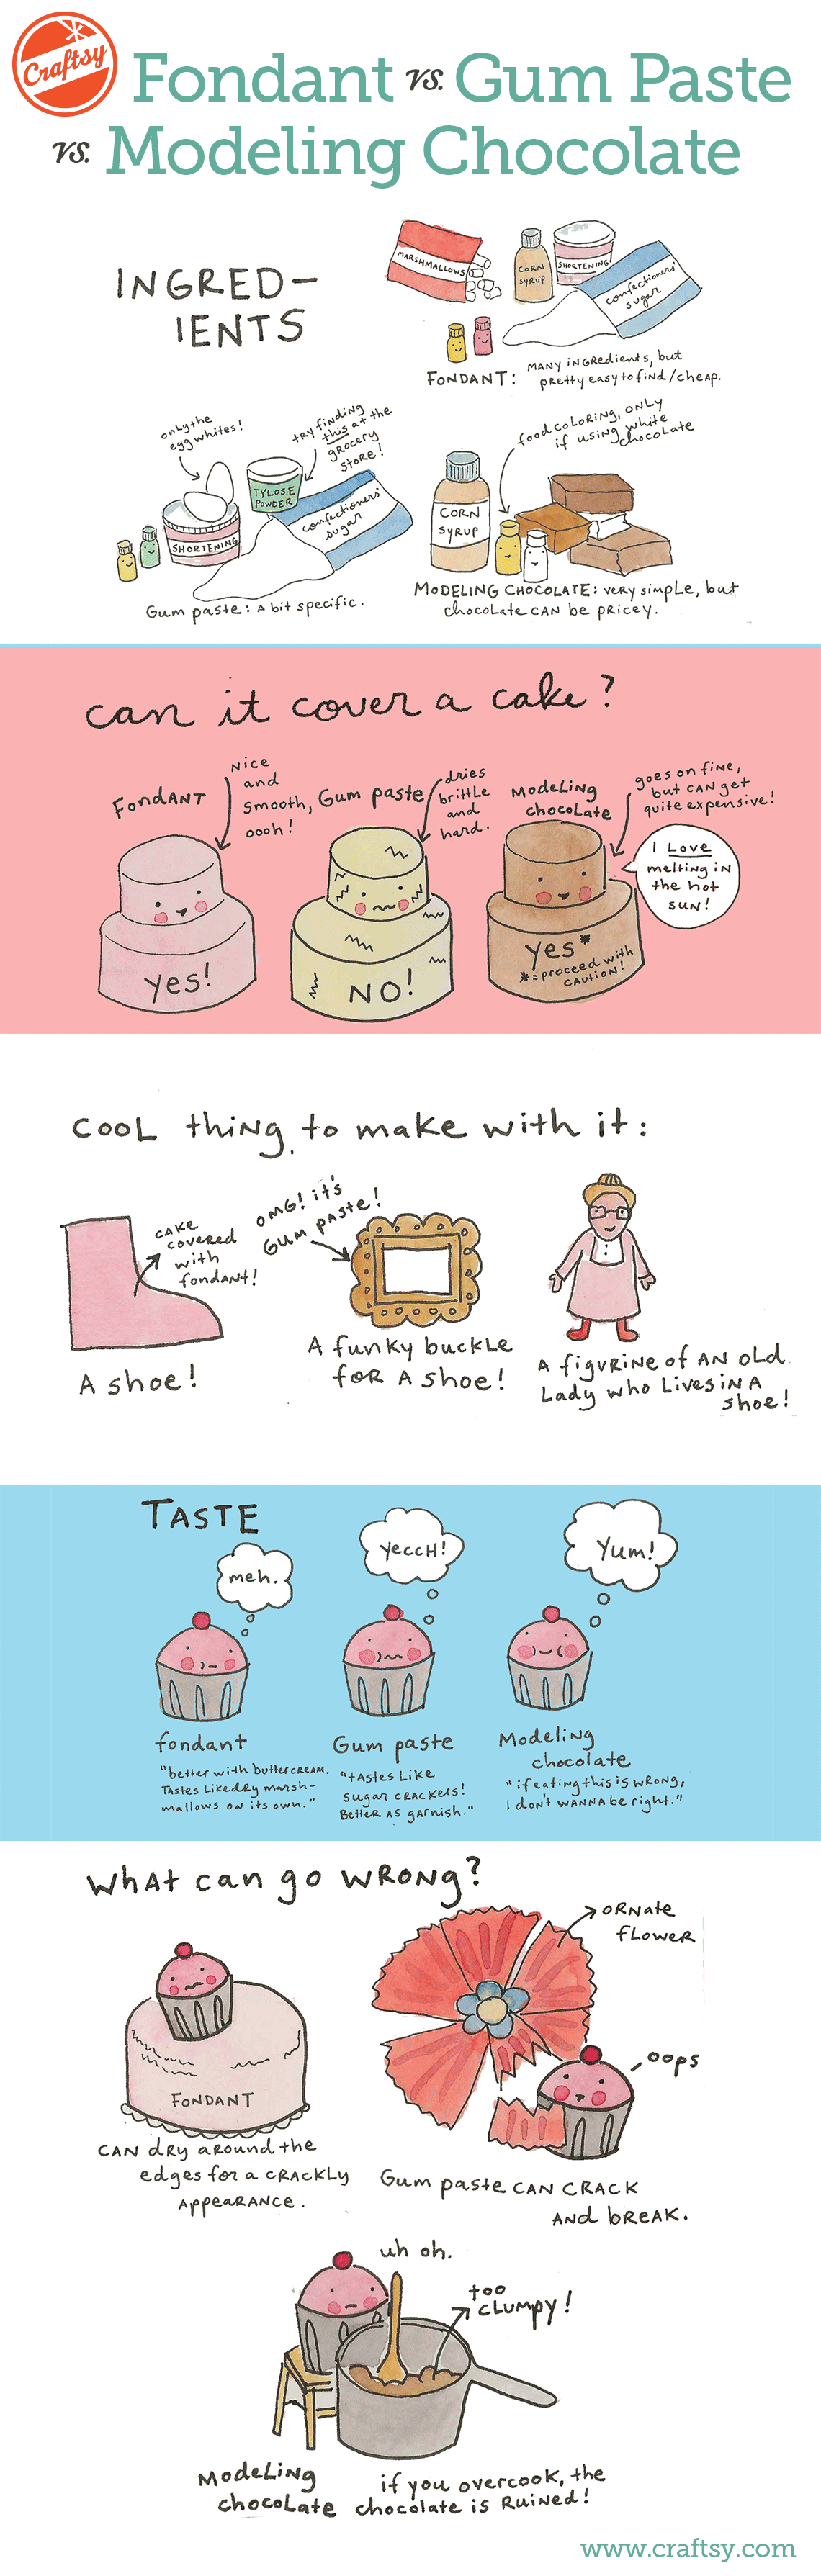 Fondant vs. Modeling Chocolate vs. Gum Paste Infographic